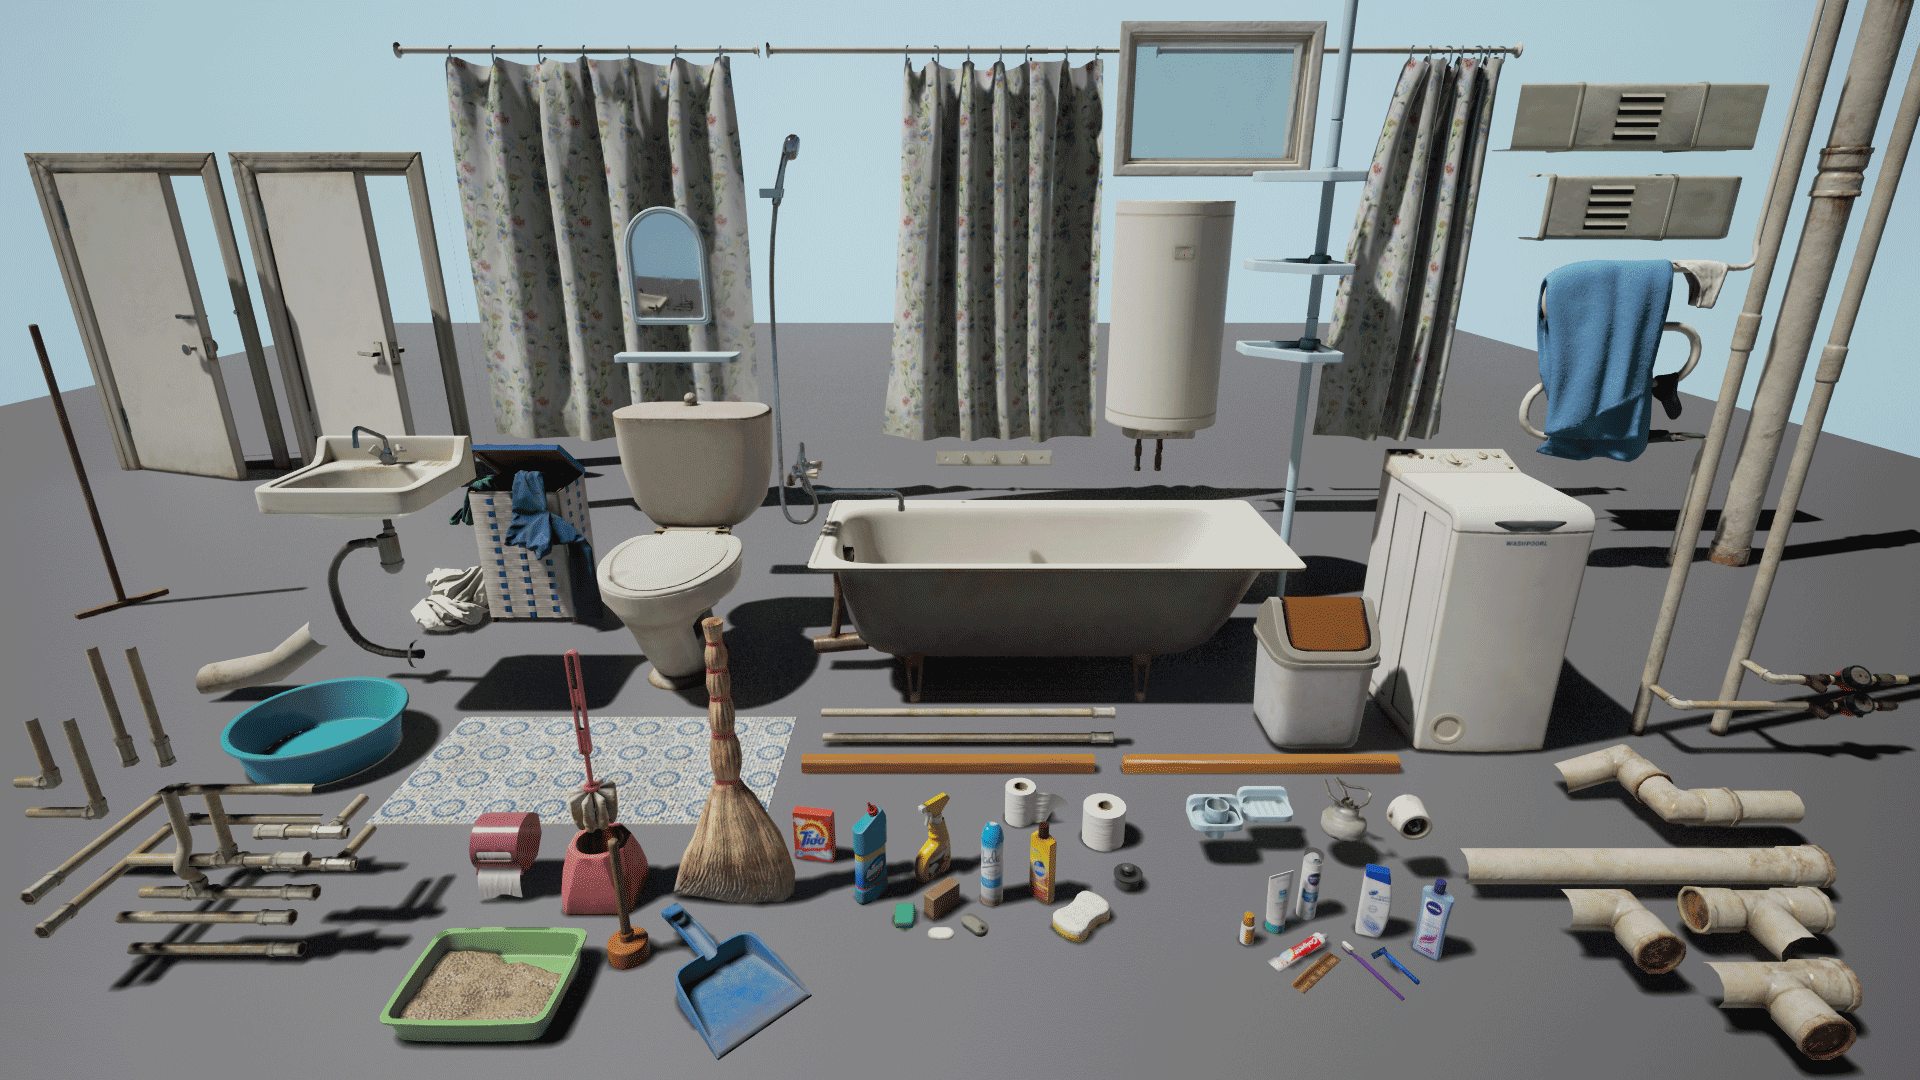 Bathroom white noise - Post Soviet Bathroom By White Noise Team In Environments Ue4 Marketplace